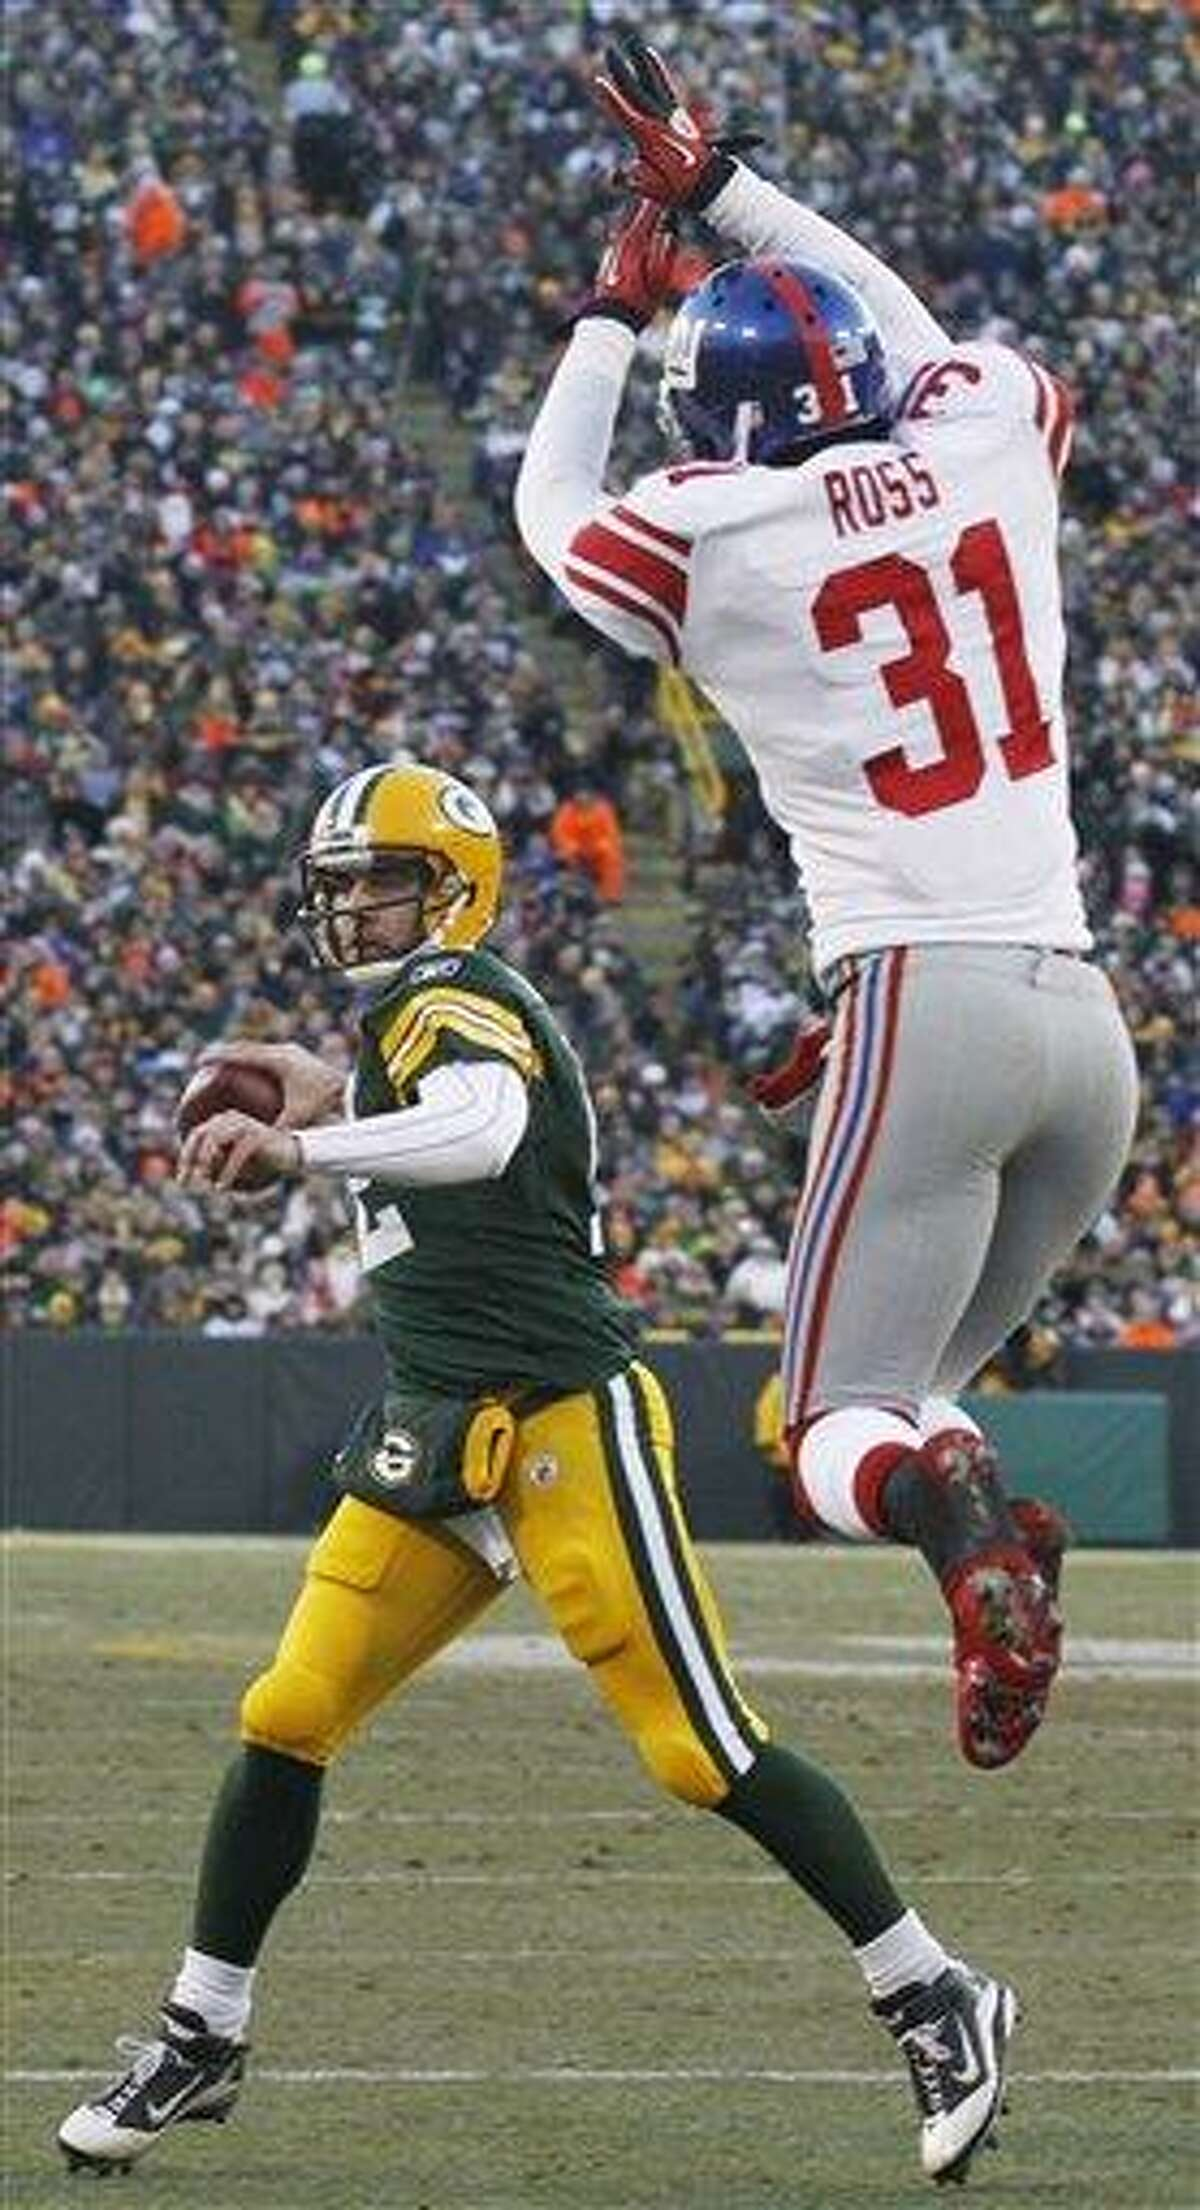 New York Giants' Aaron Ross (31) applies pressure as Green Bay Packers quarterback Aaron Rodgers (12) throws a 3-yard touchdown pass to James Jones during the first half of an NFL football game Sunday, Dec. 26, 2010, in Green Bay, Wis. (AP Photo/Jeffrey Phelps)